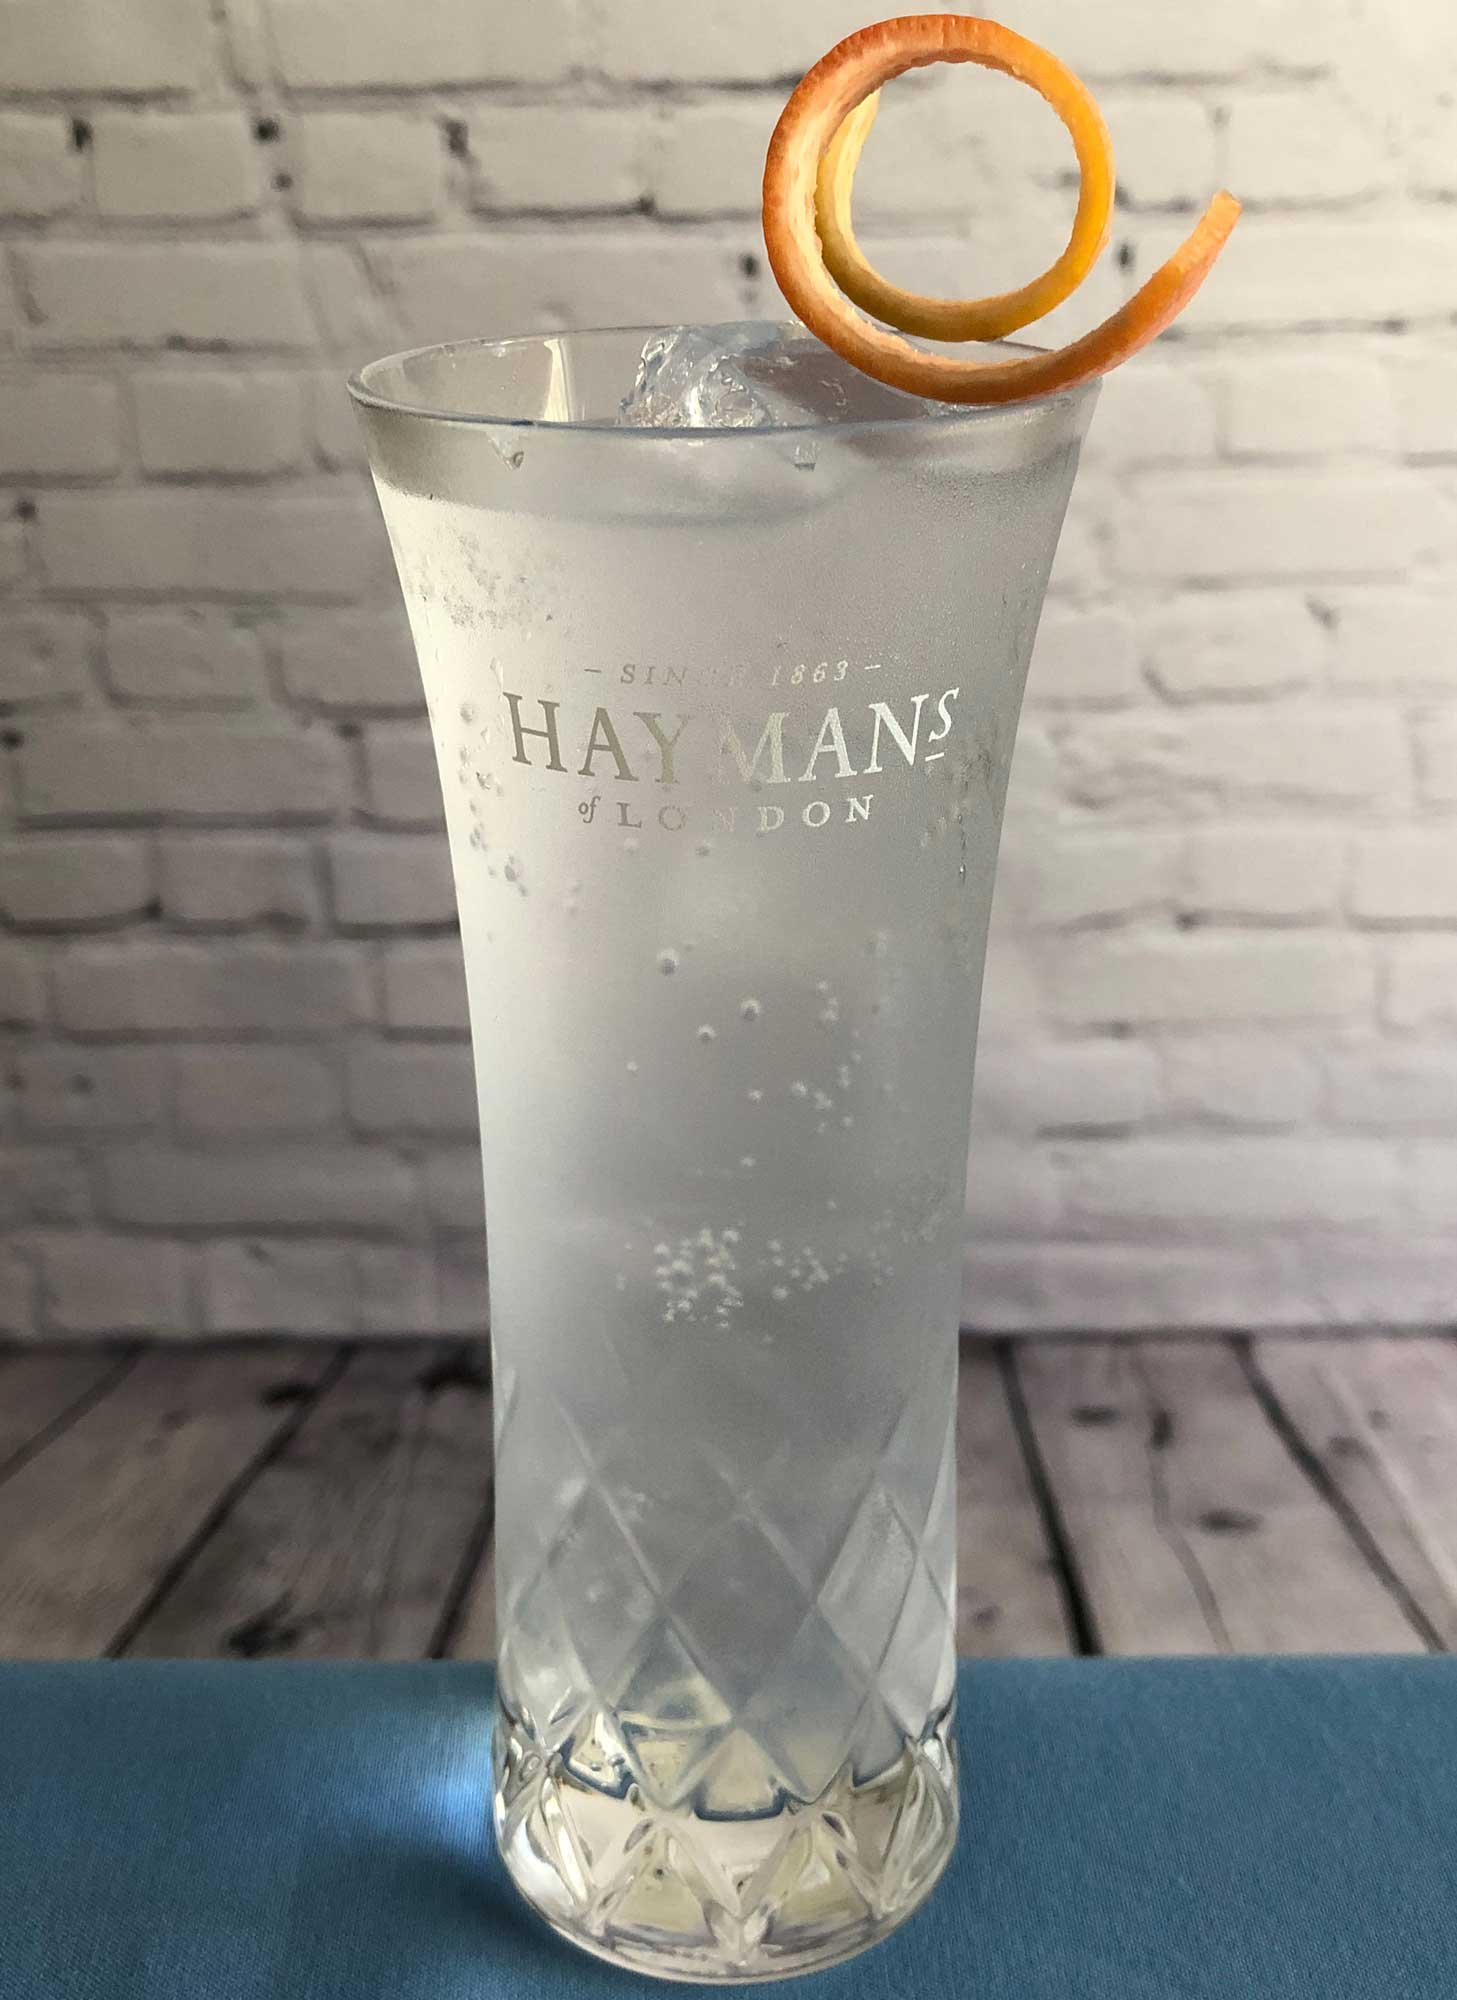 An example of the Royal Gin & Tonic, the mixed drink (cocktail) featuring Fever Tree Indian Tonic Water, and Hayman's Royal Dock Navy Strength Gin; photo by Lee Edwards